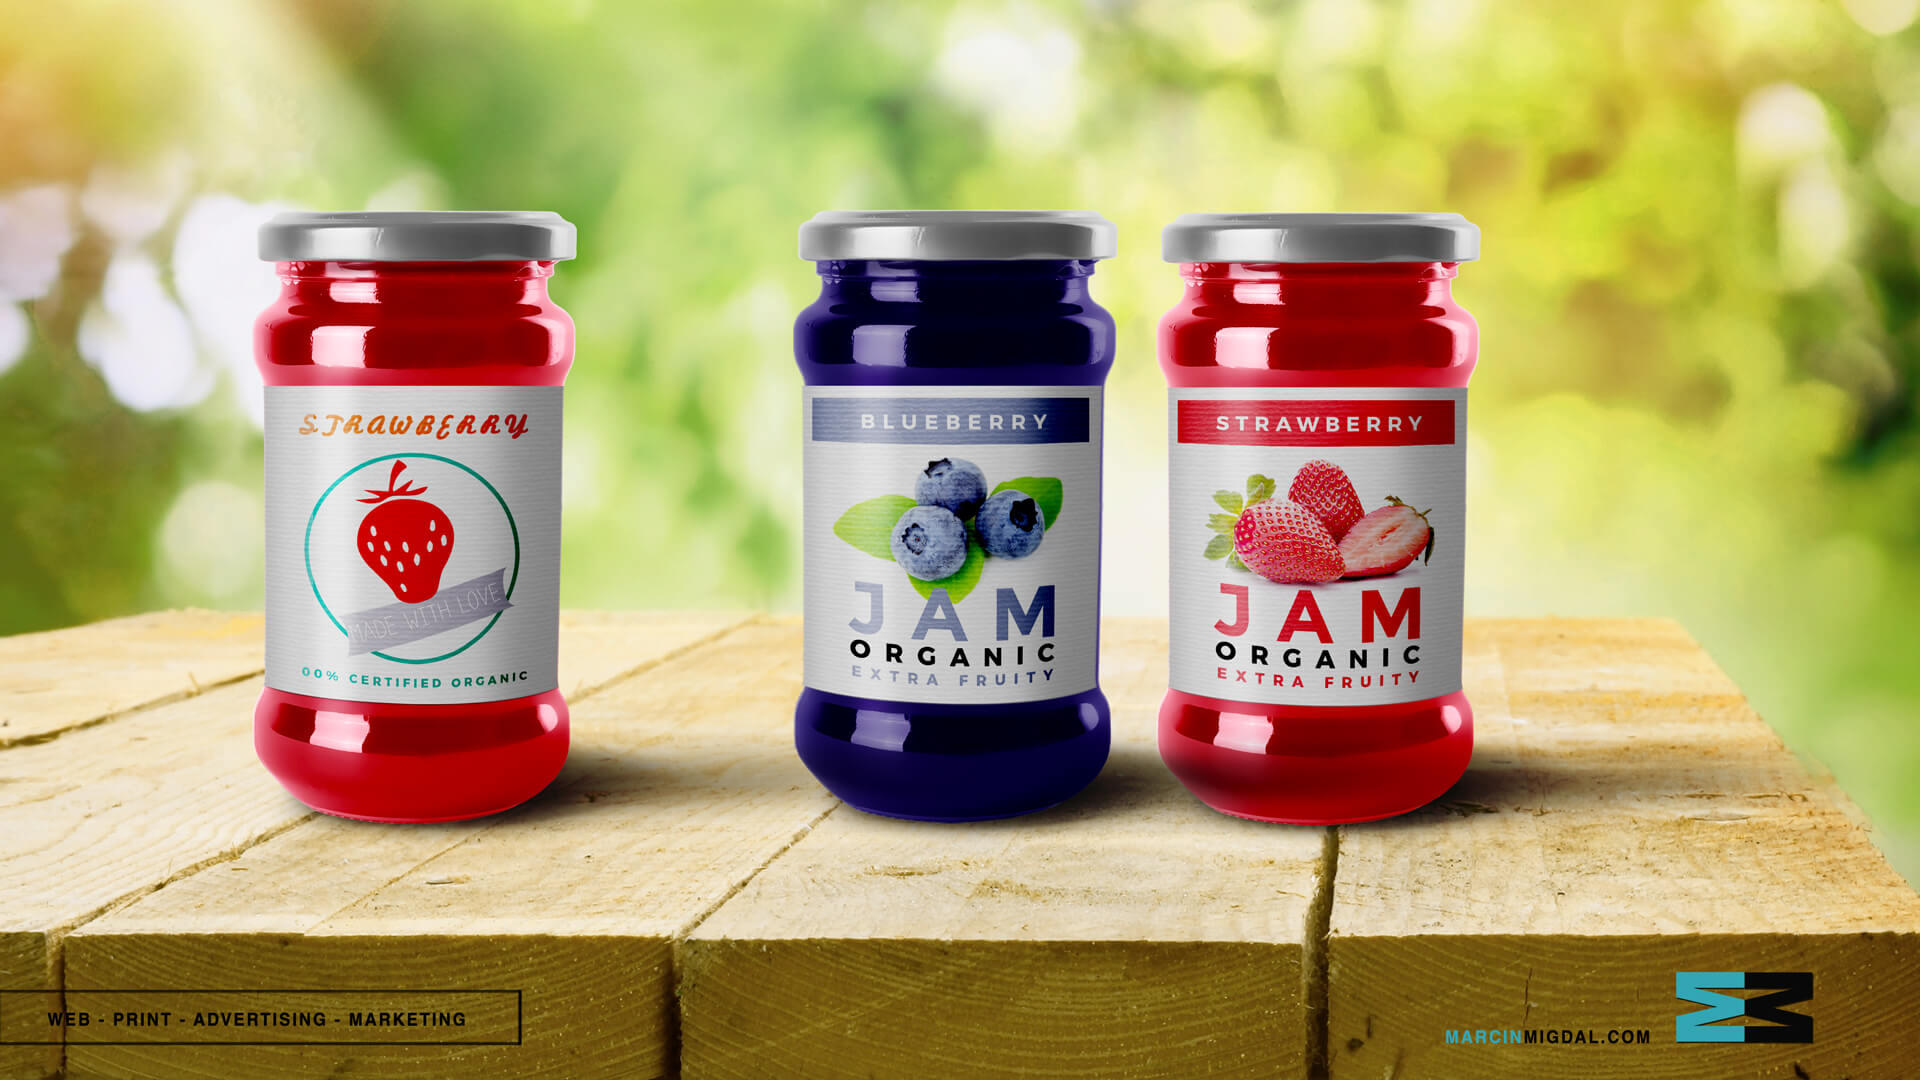 Jam - Food Packaging Design by Marcin Migdal